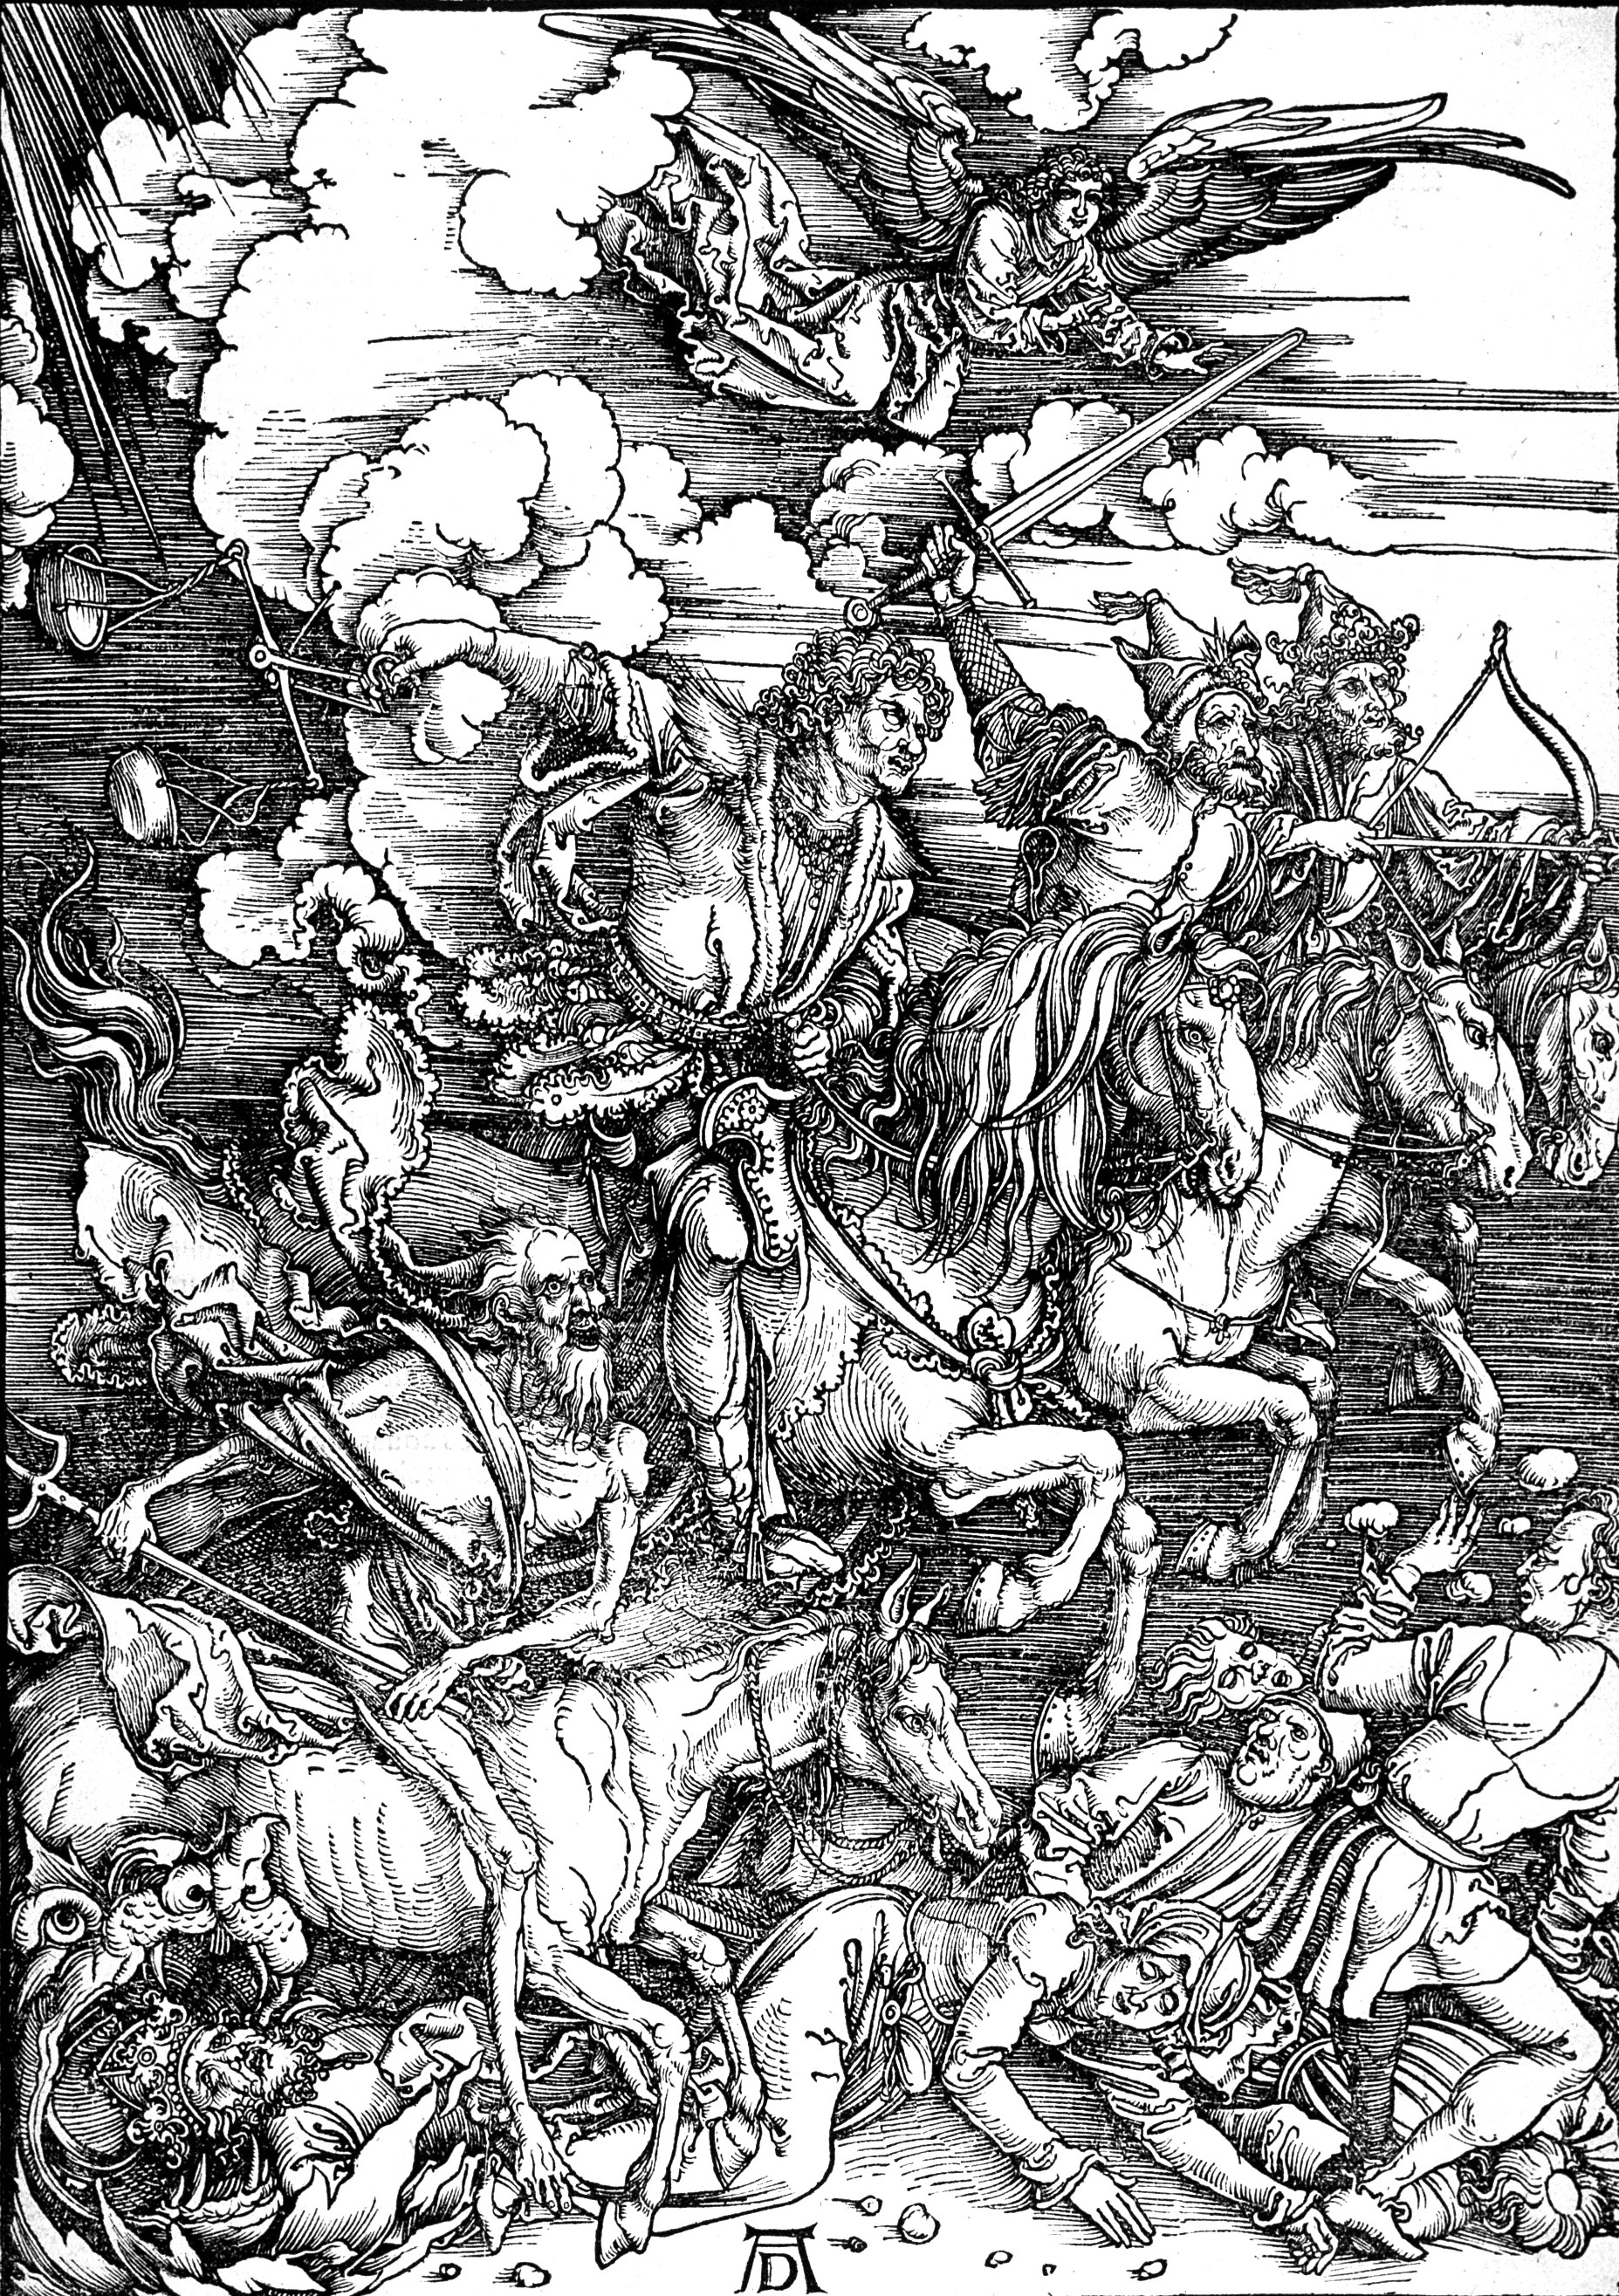 Famous woodcut of the Horsemen by Albrecht Durer, 1498.